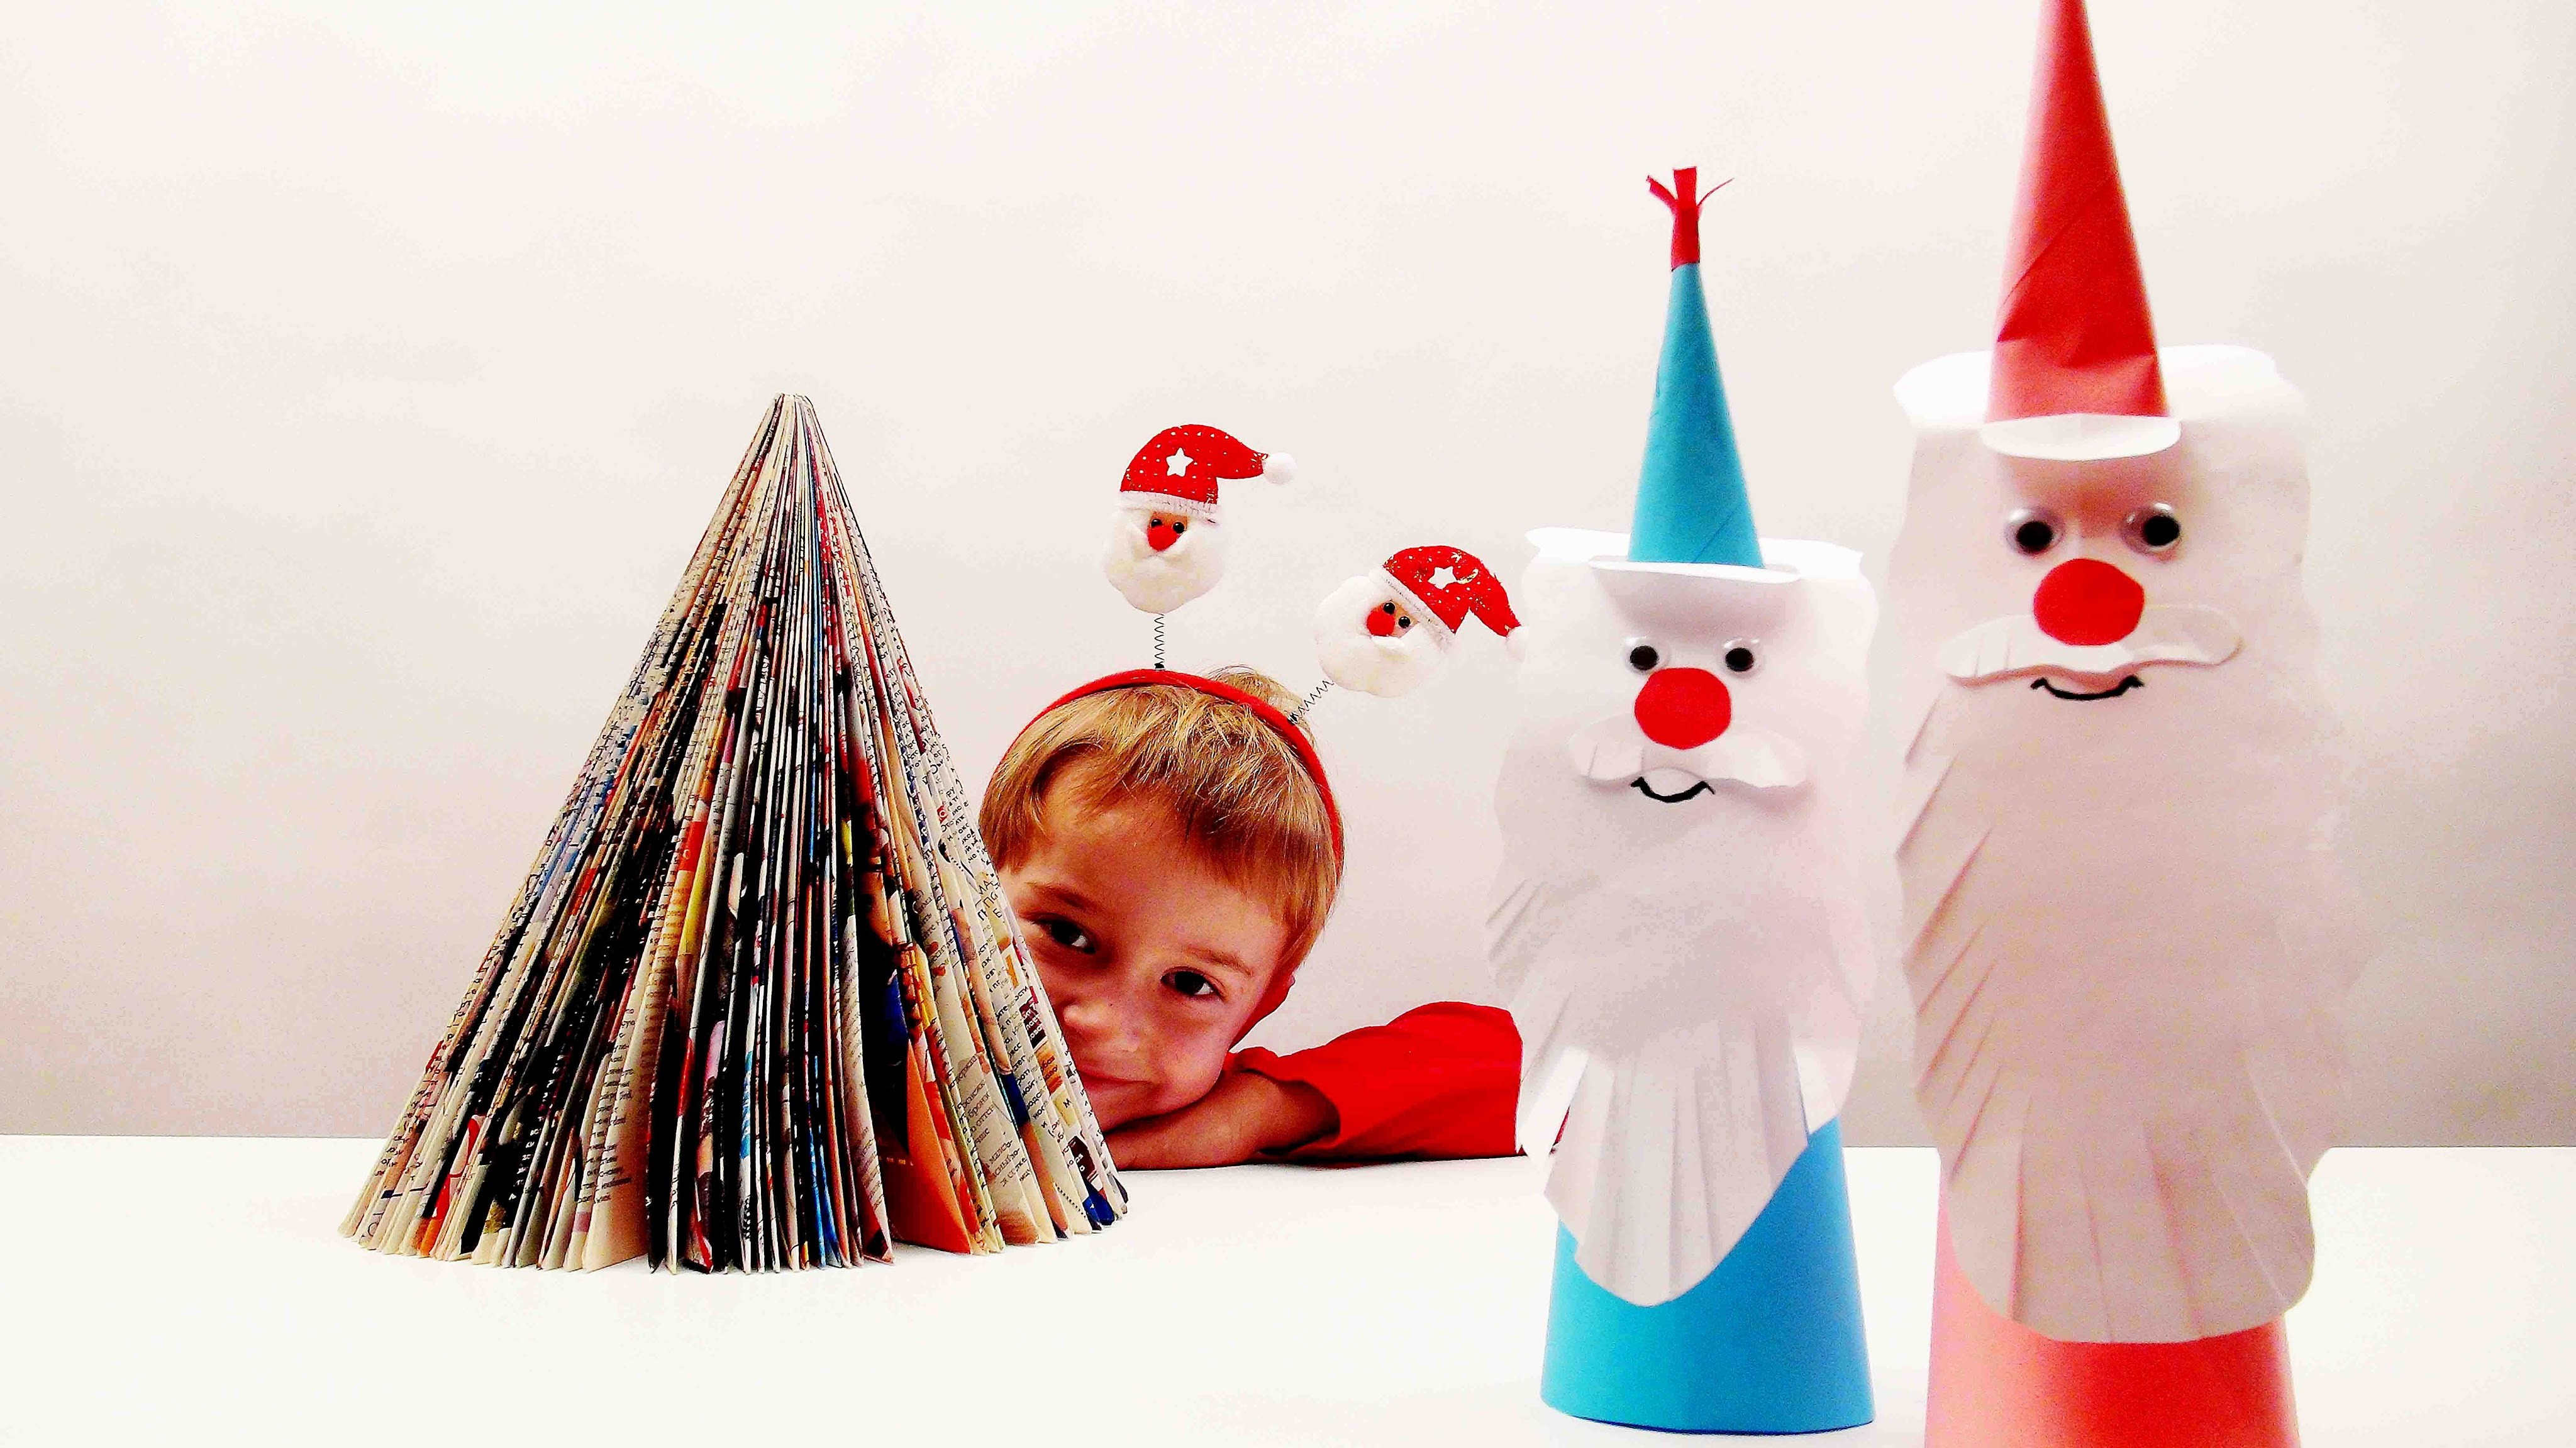 Master classes. DIY - Do it yourself. Paper Santa Claus.